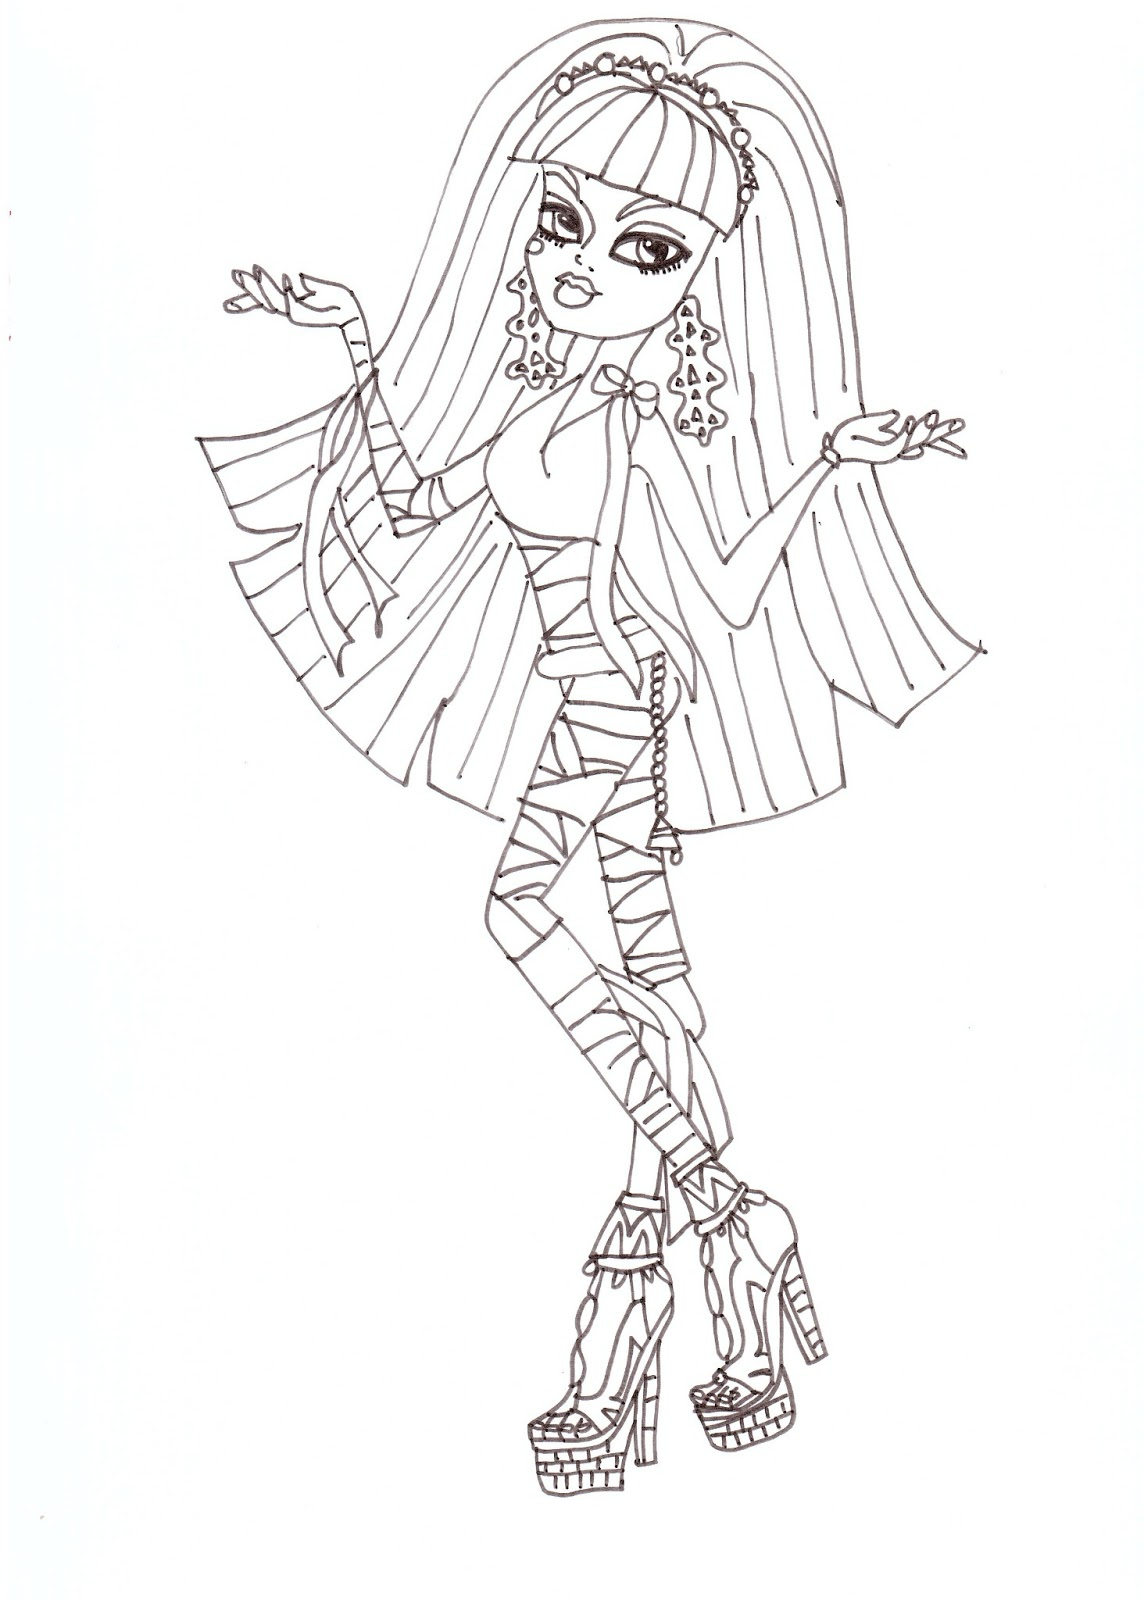 Free Printable Monster High Coloring Pages: Cleo Coloring